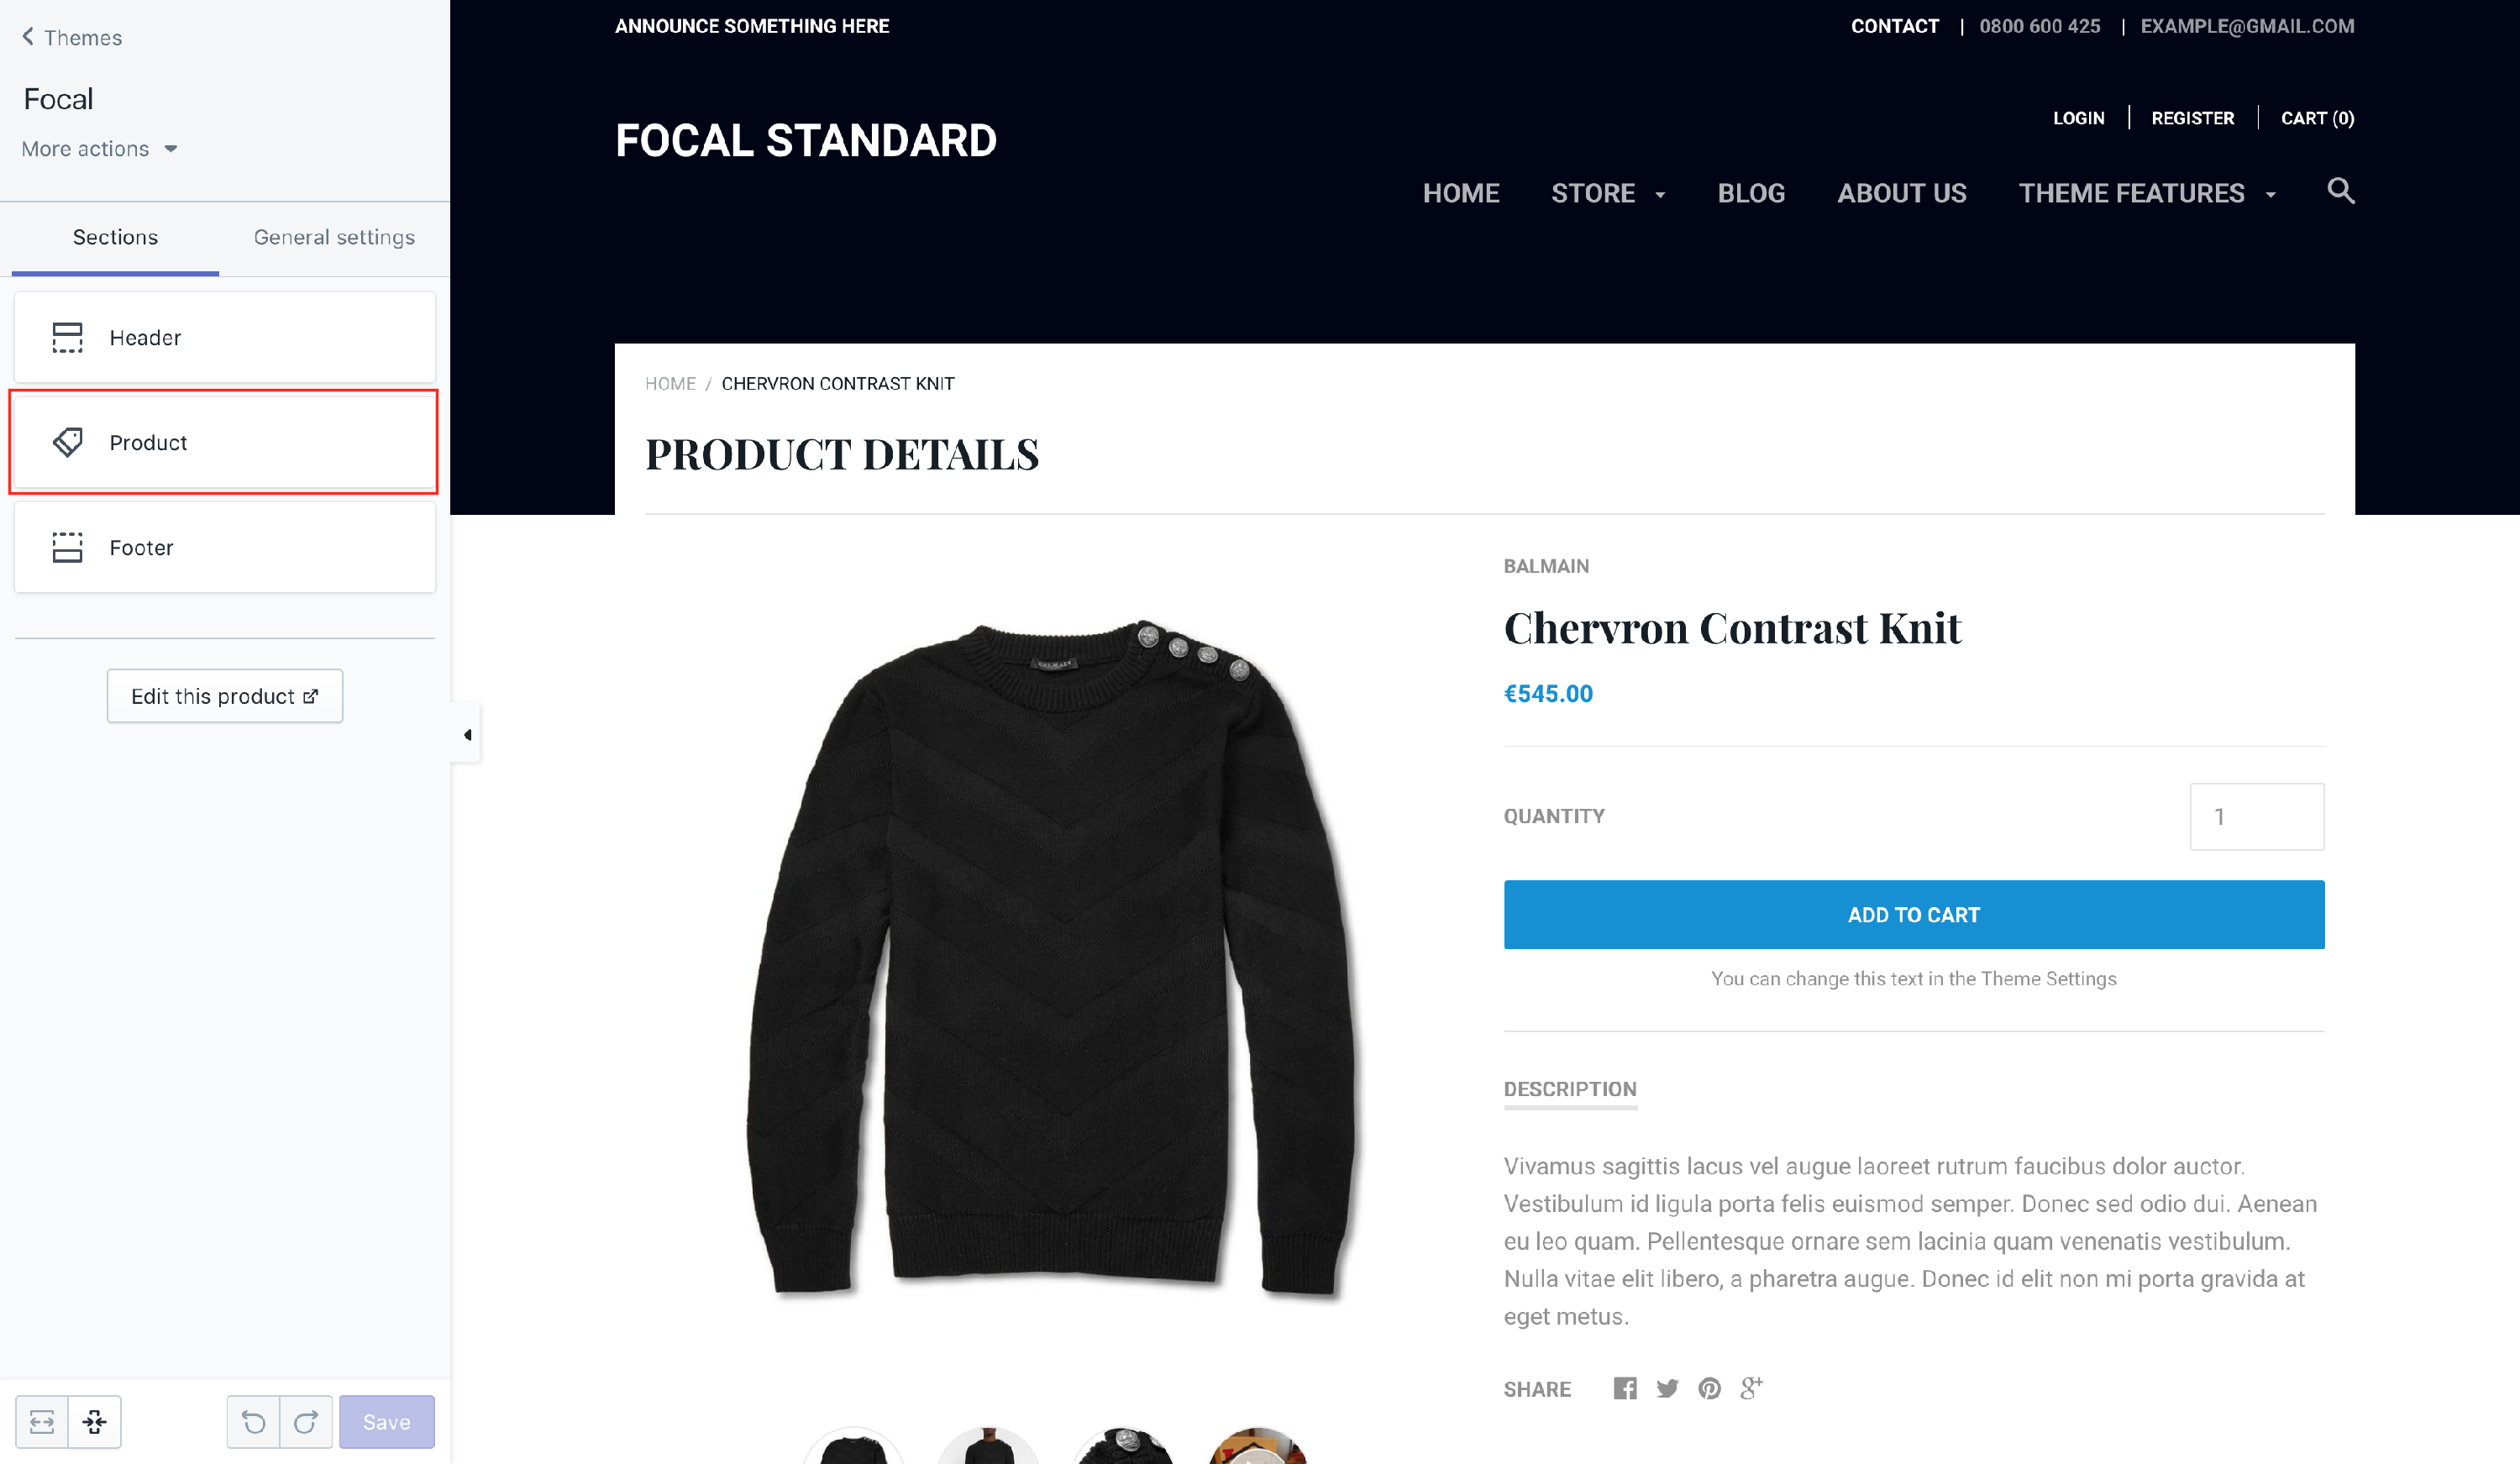 PRODUCT - Adding global tabs to product pages - Shopify Themes